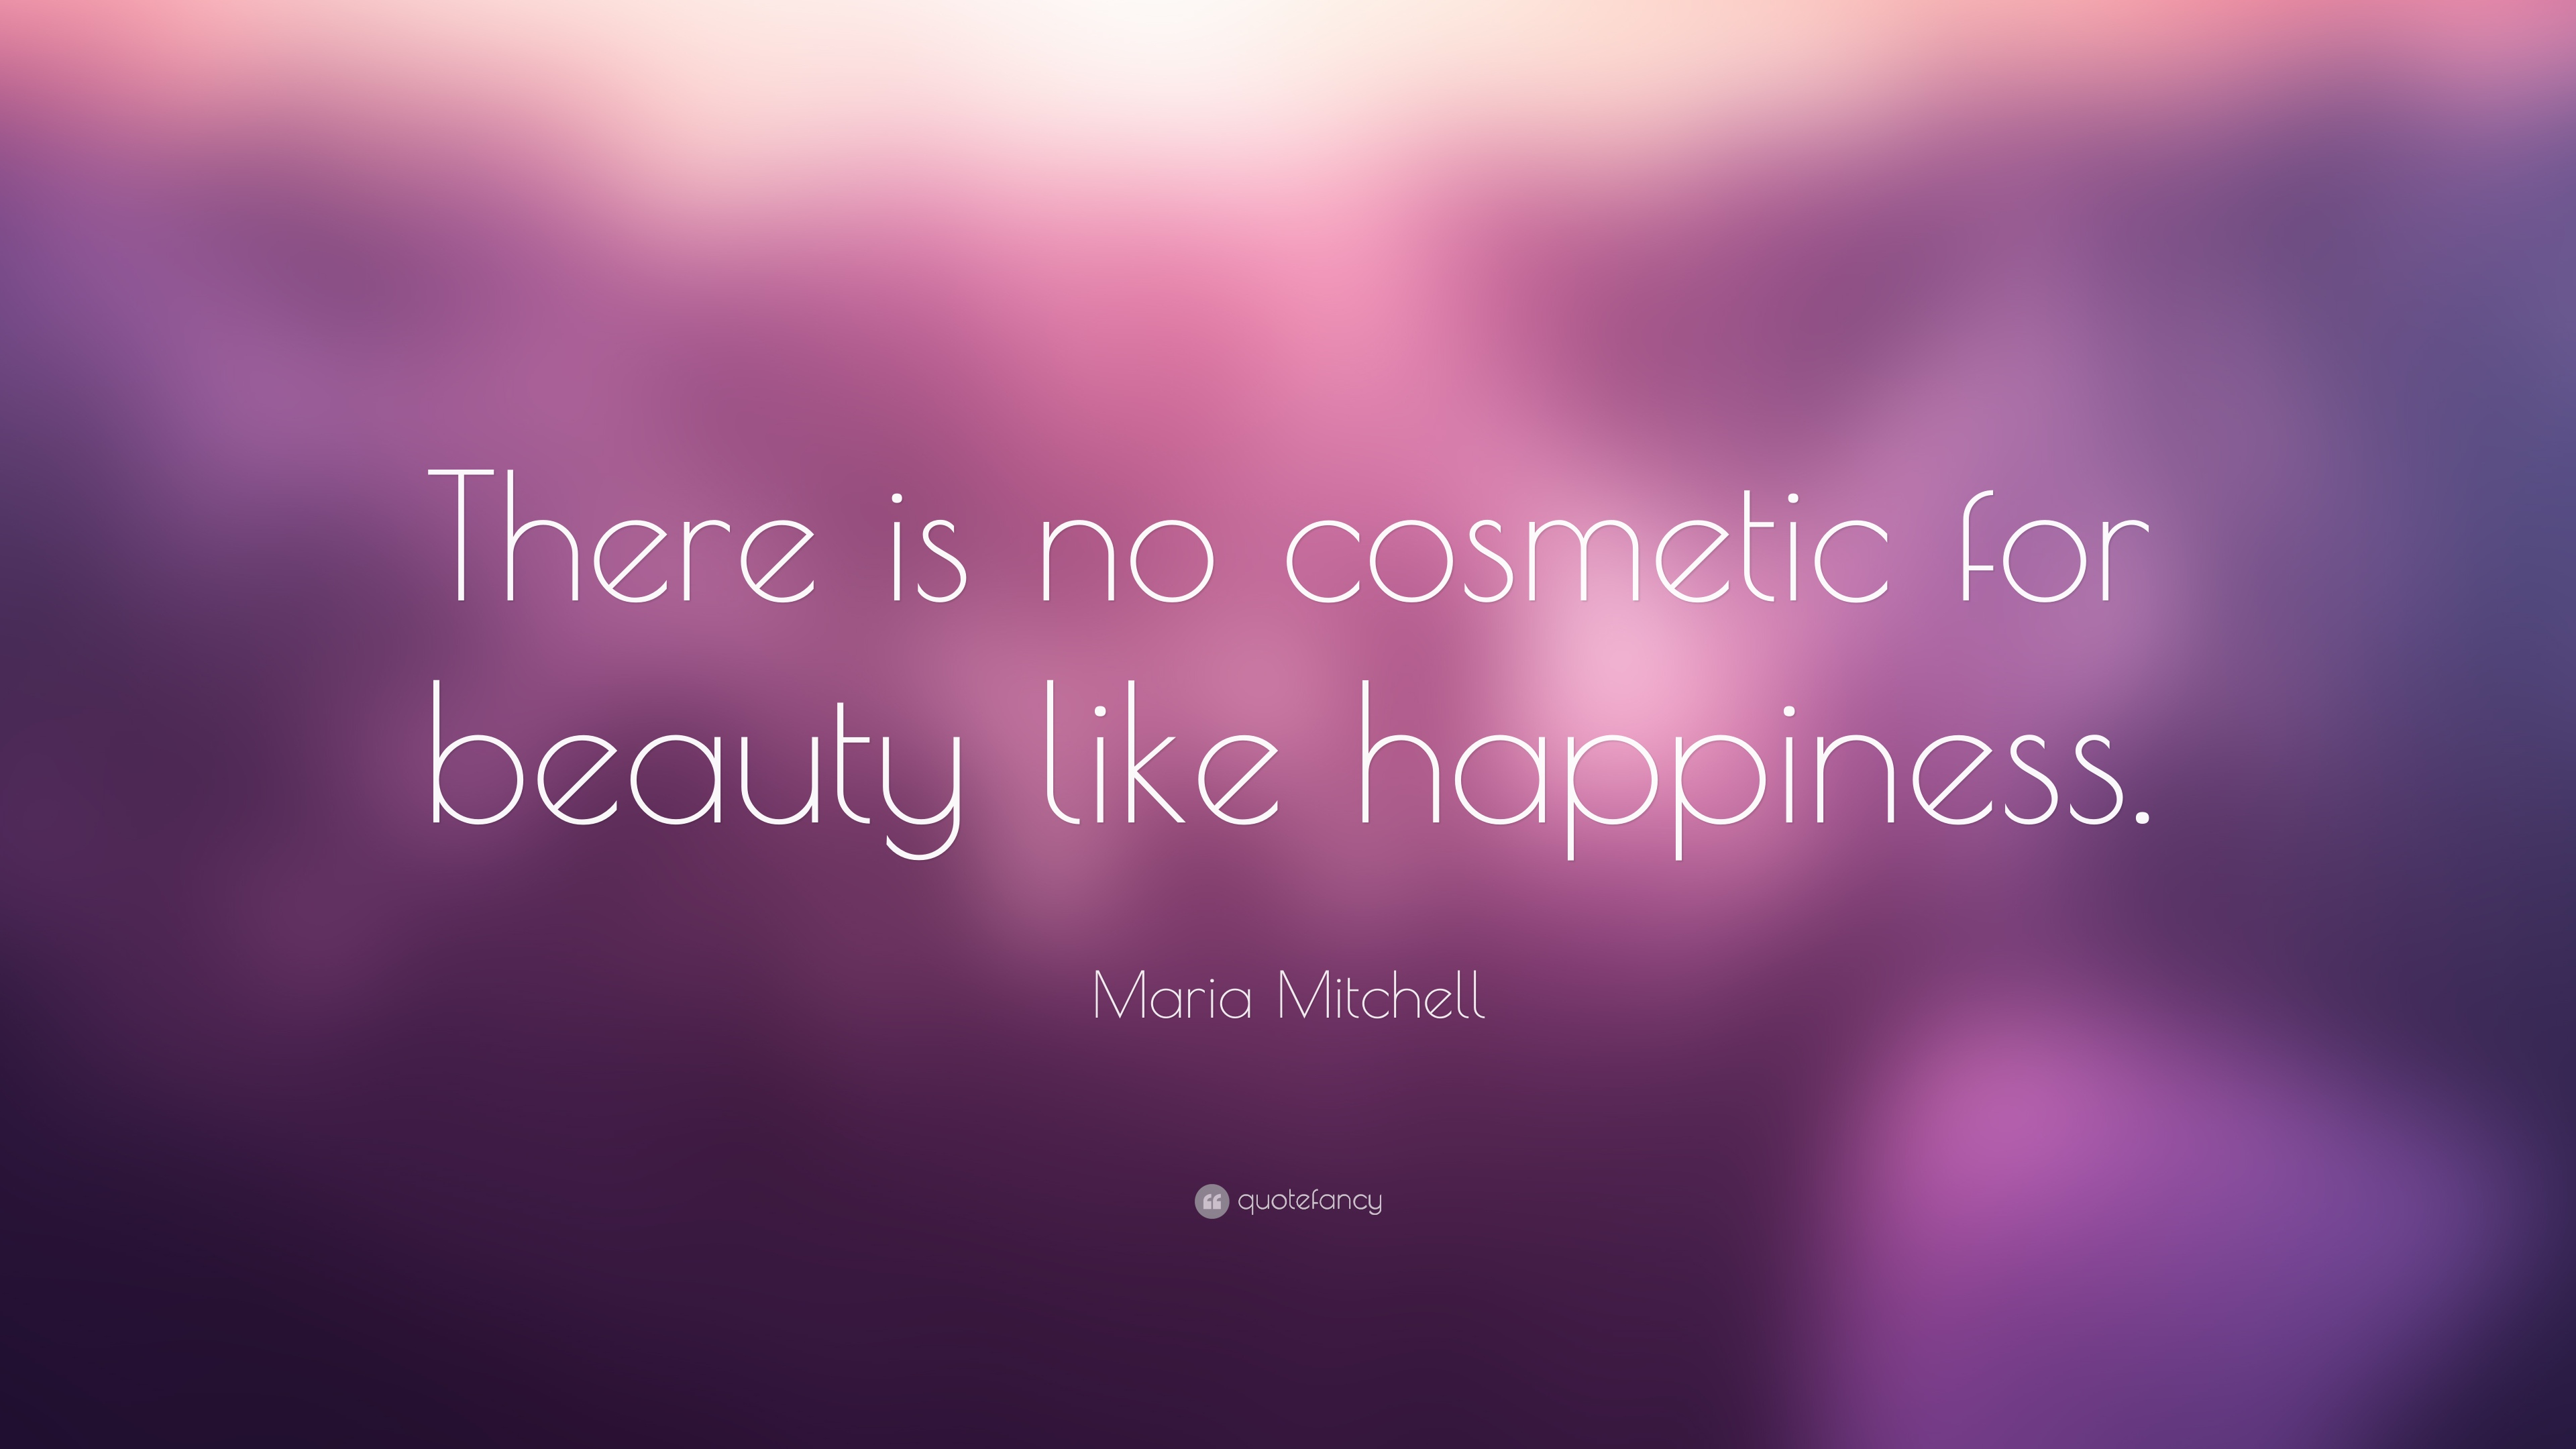 Quotes Happiness Entrancing Maria Mitchell Quotes 45 Wallpapers  Quotefancy